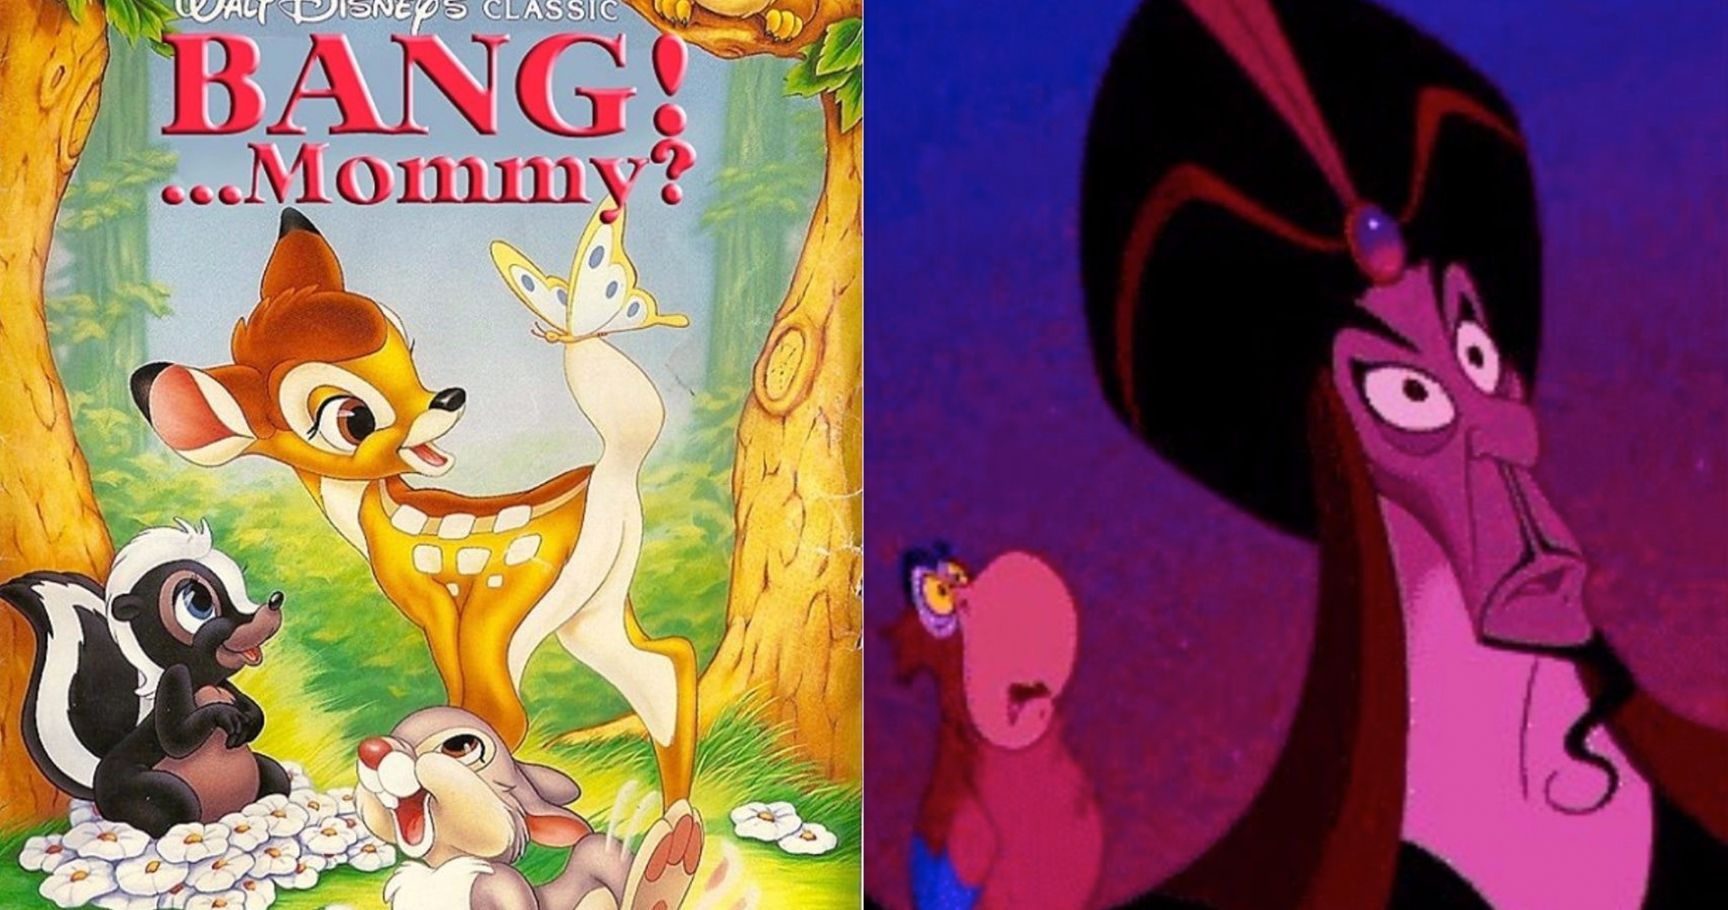 15 Brutally Honest Disney Movie Posters That Will Hit You Right In The Feels